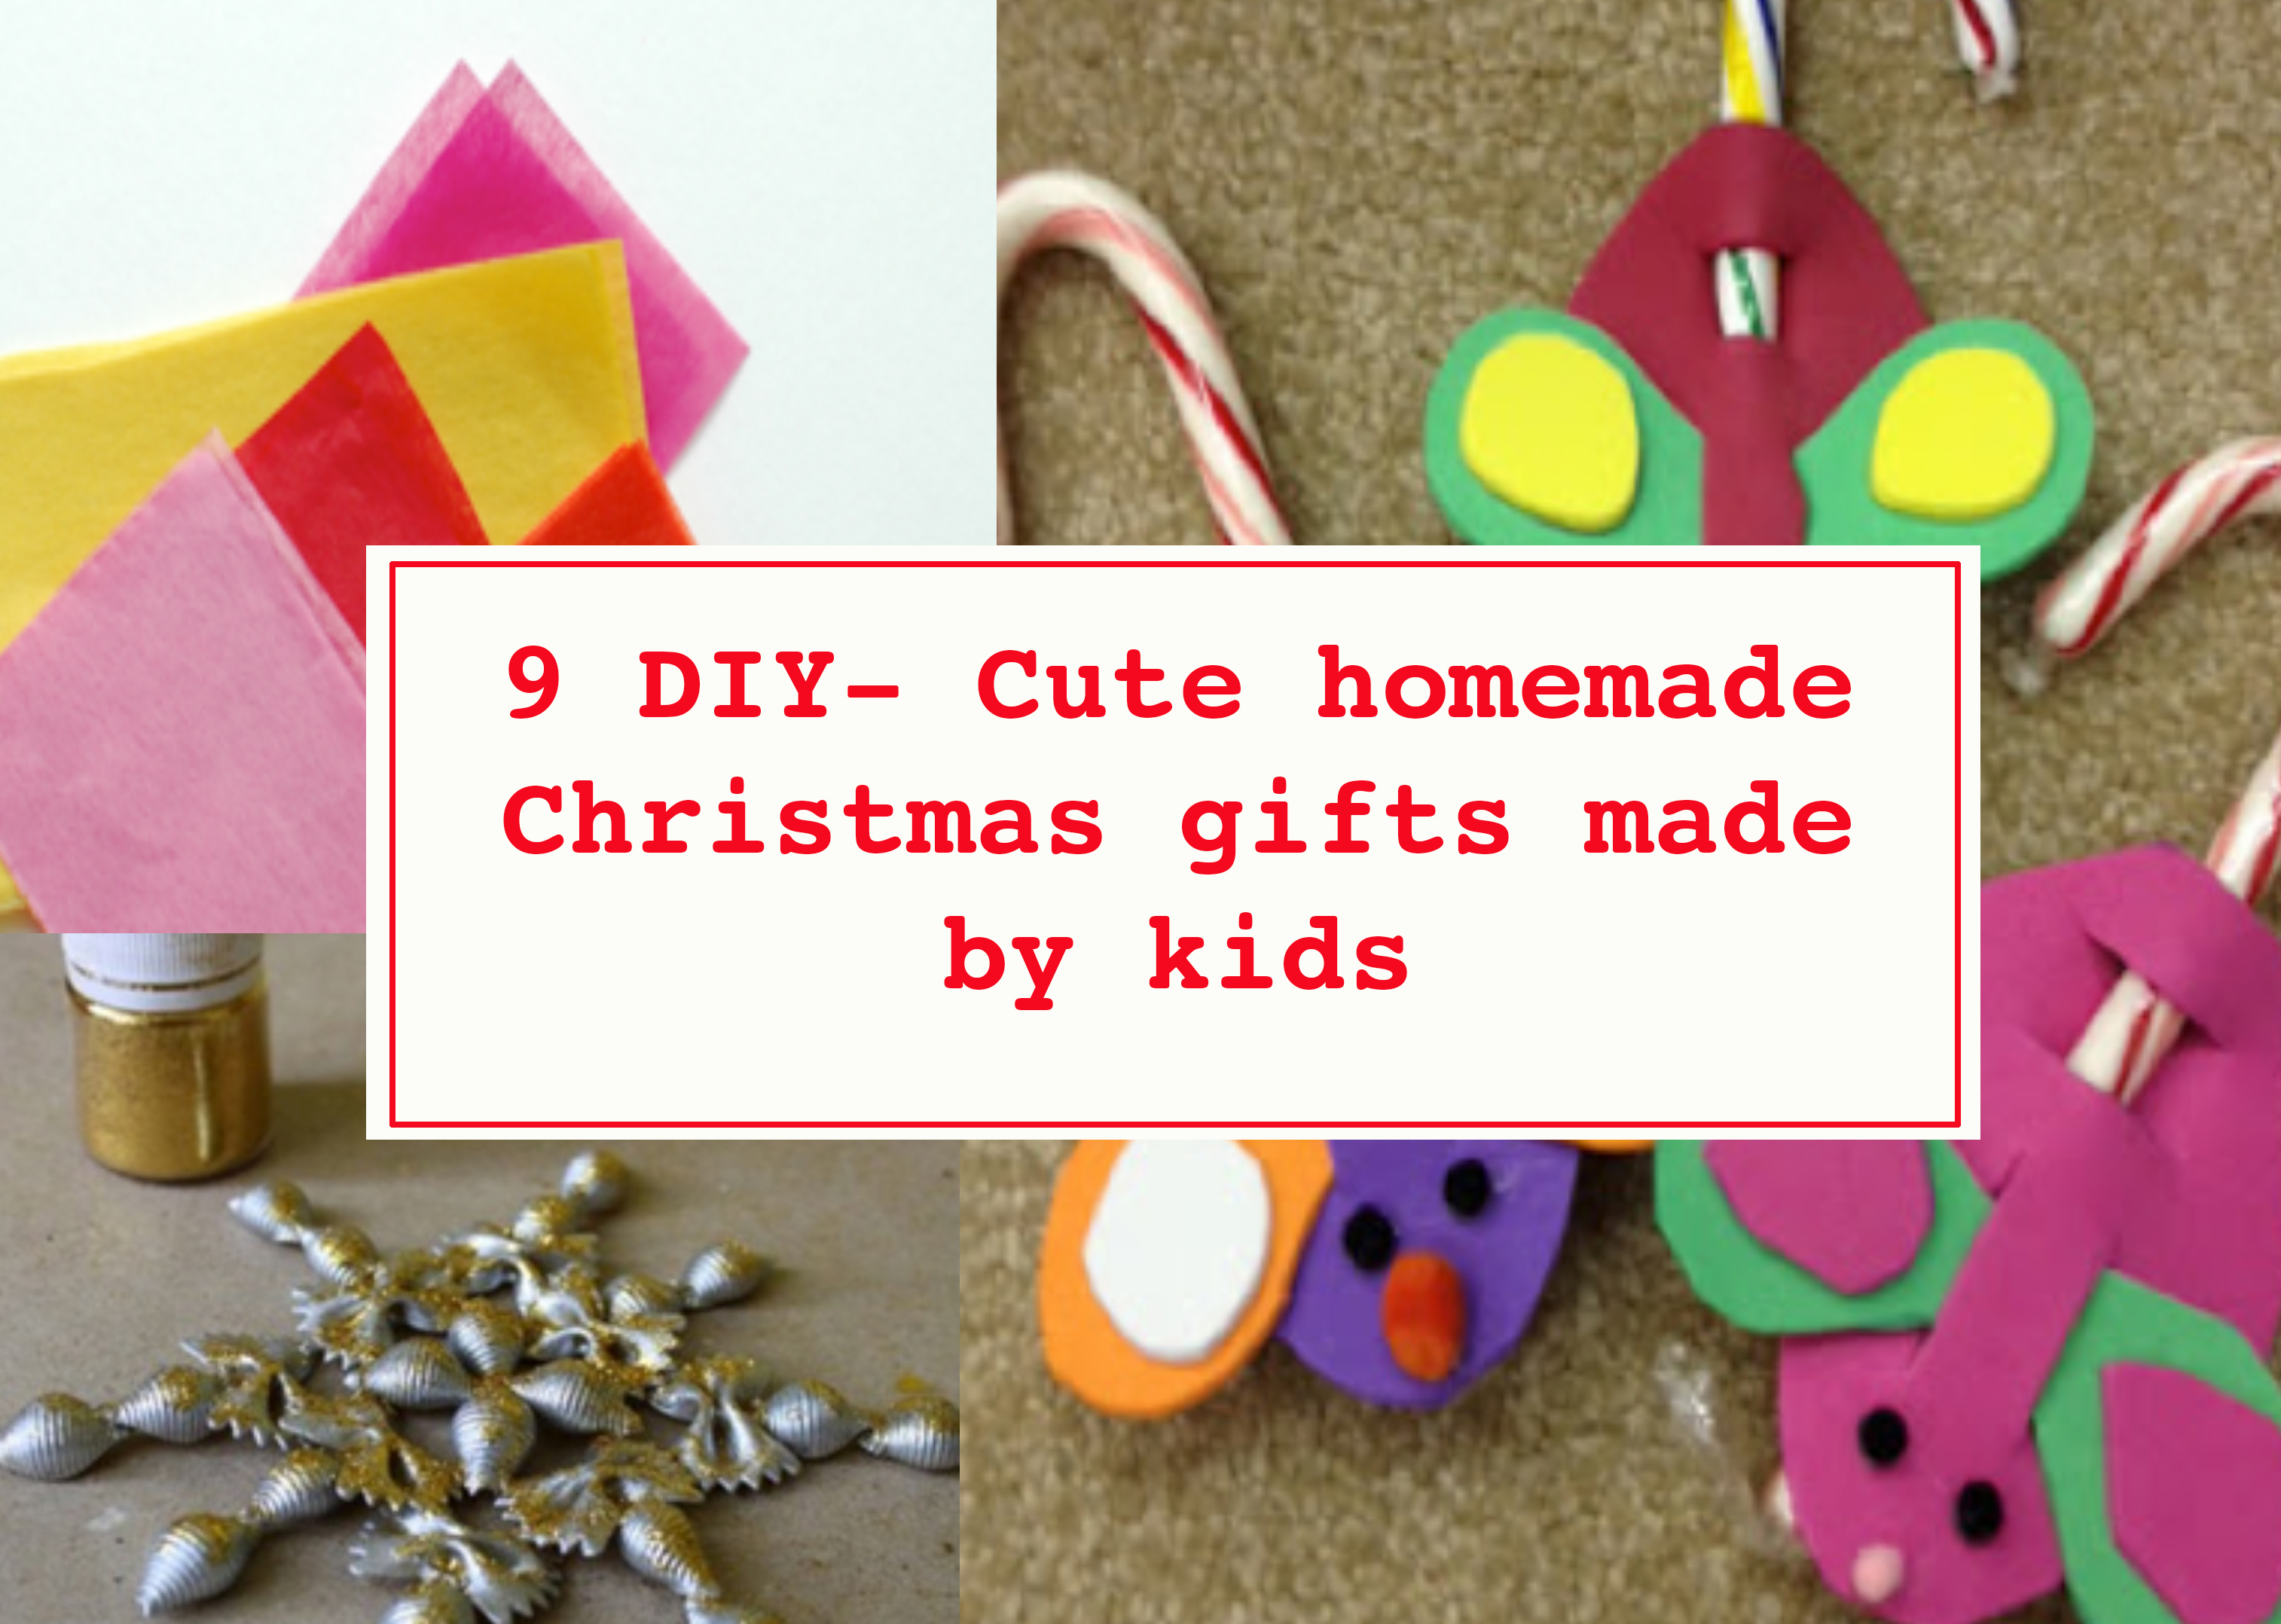 9 DIY- Cute homemade Christmas gifts made by kids - WIZKIDS CLUB